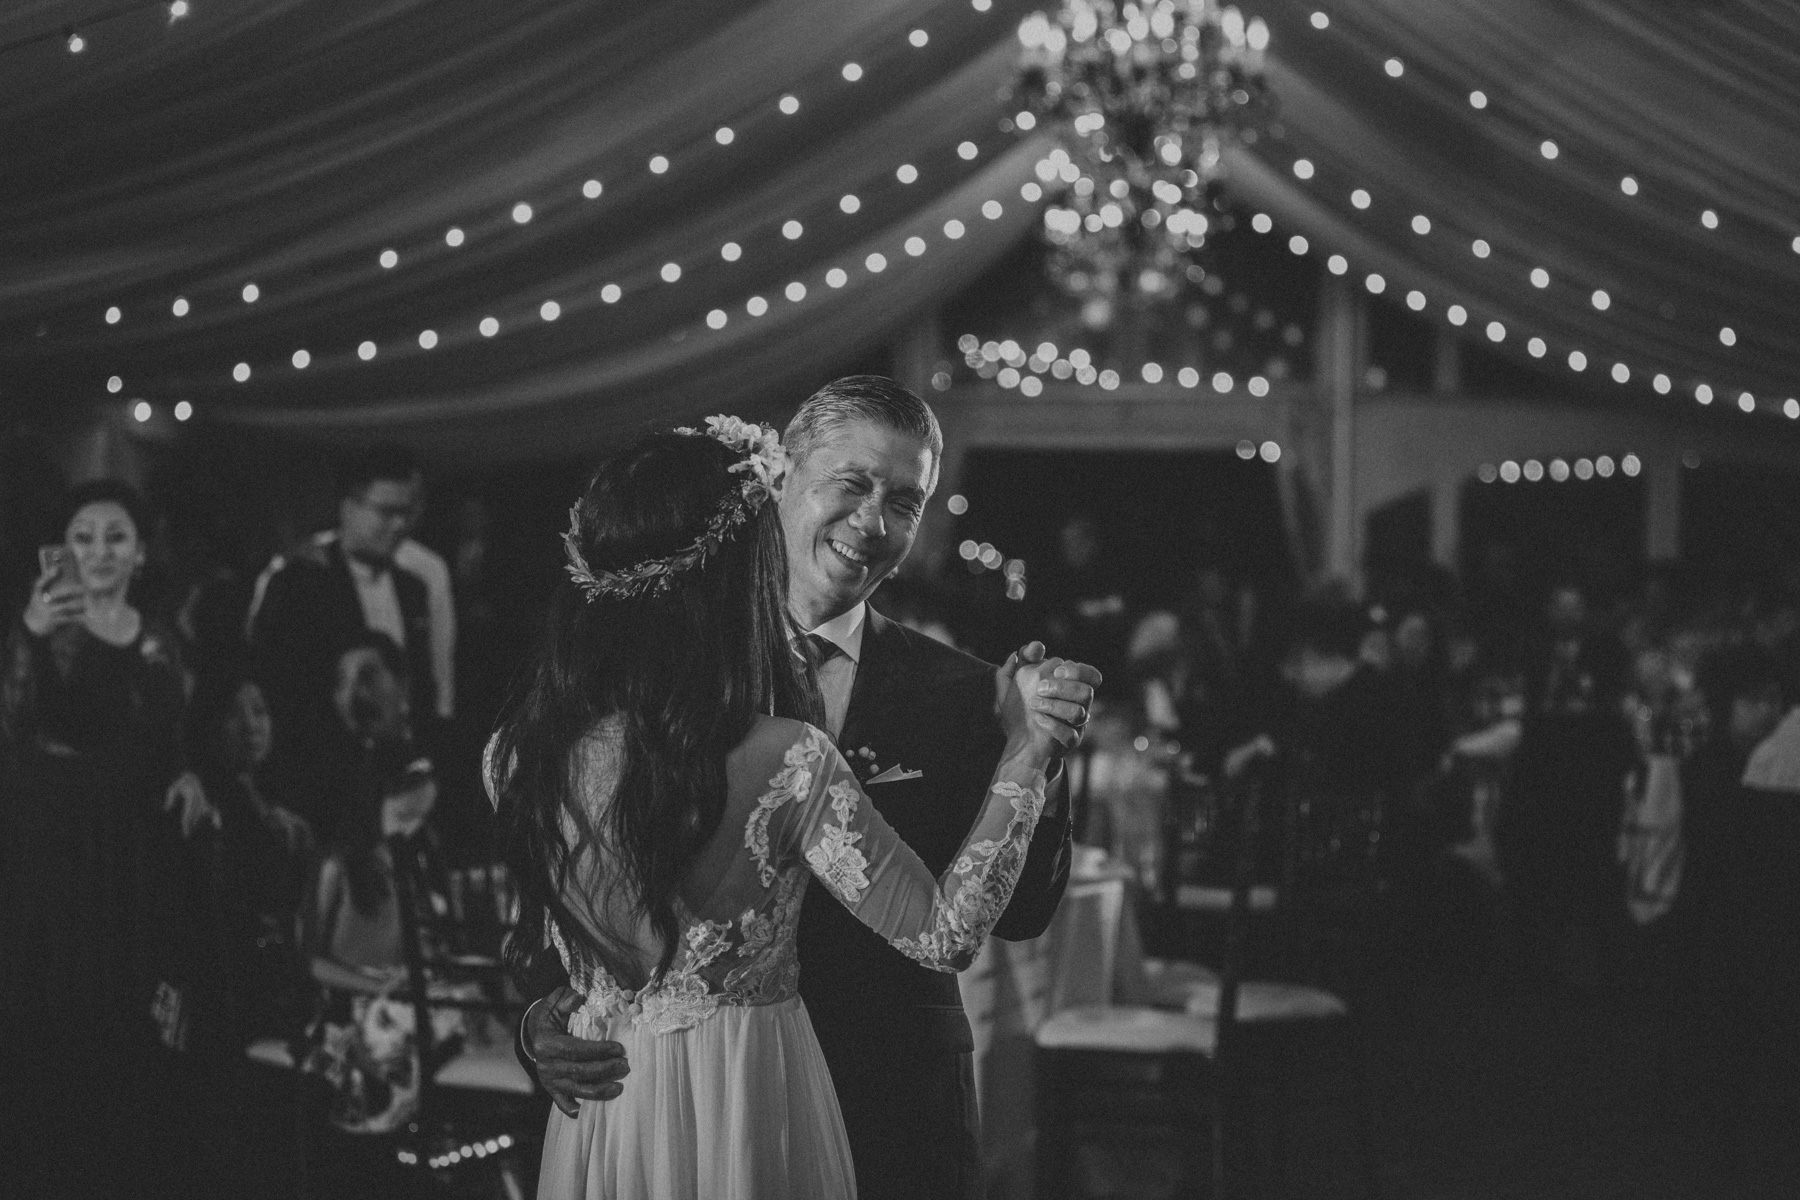 Belcroft-Estates-&-Event-Centre-wedding-photography-by-Sam-Wong-of-Artanis-Collective_044.jpg